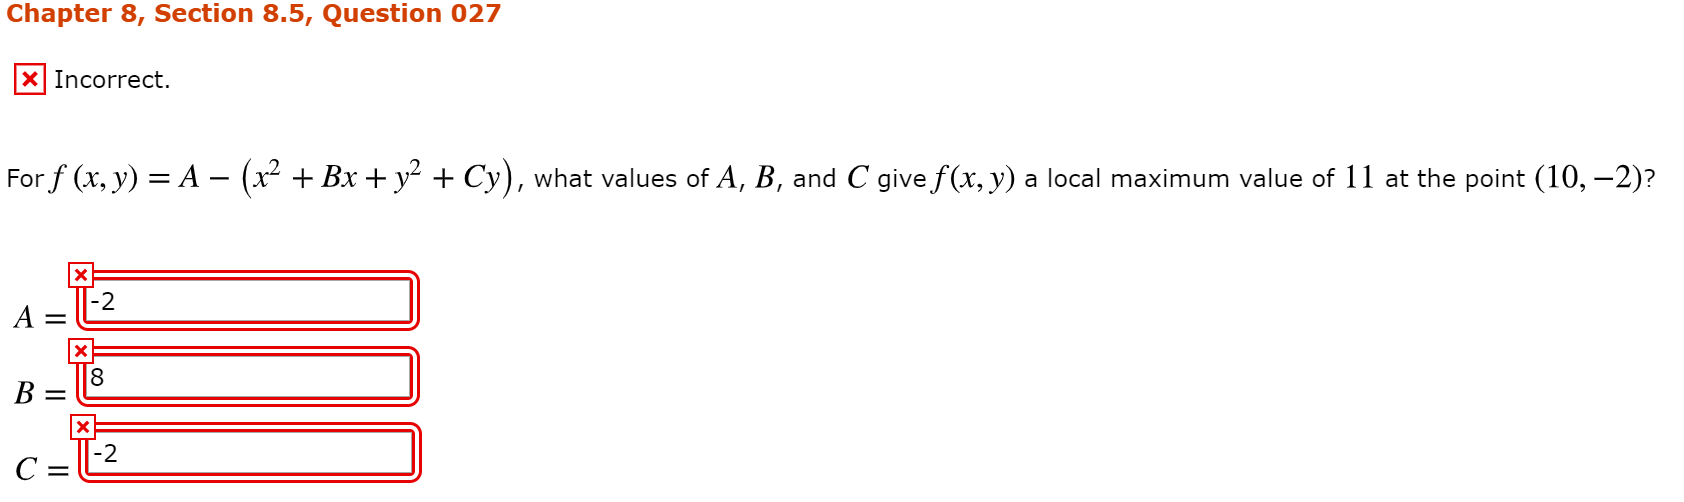 Chapter 8, Section 8.5, Question 027 X] Incorrect. For f (x, y) = A - (x2 + Bx + y2 + Cy), what values of A, B, and C give f(